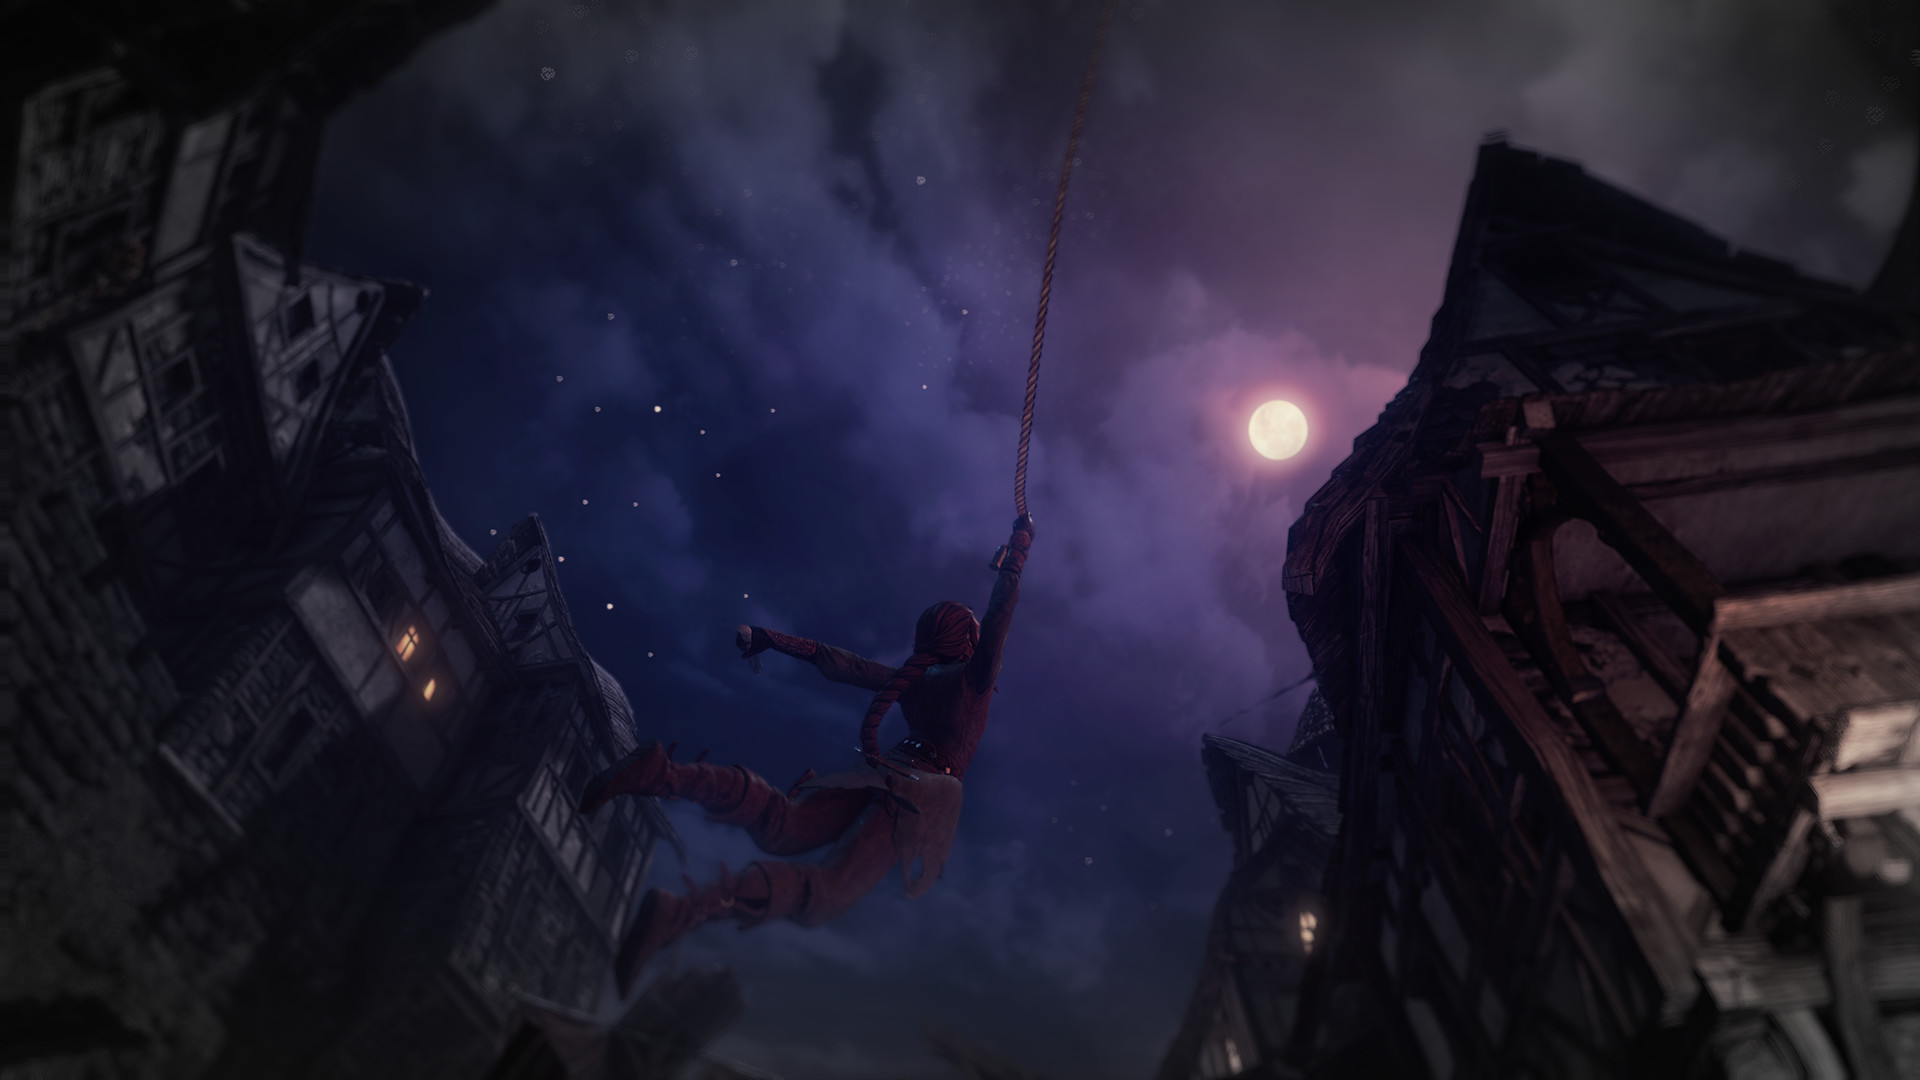 Befriend the Shadows and Manipulate Time in Shadwen on NVIDIA SHIELD